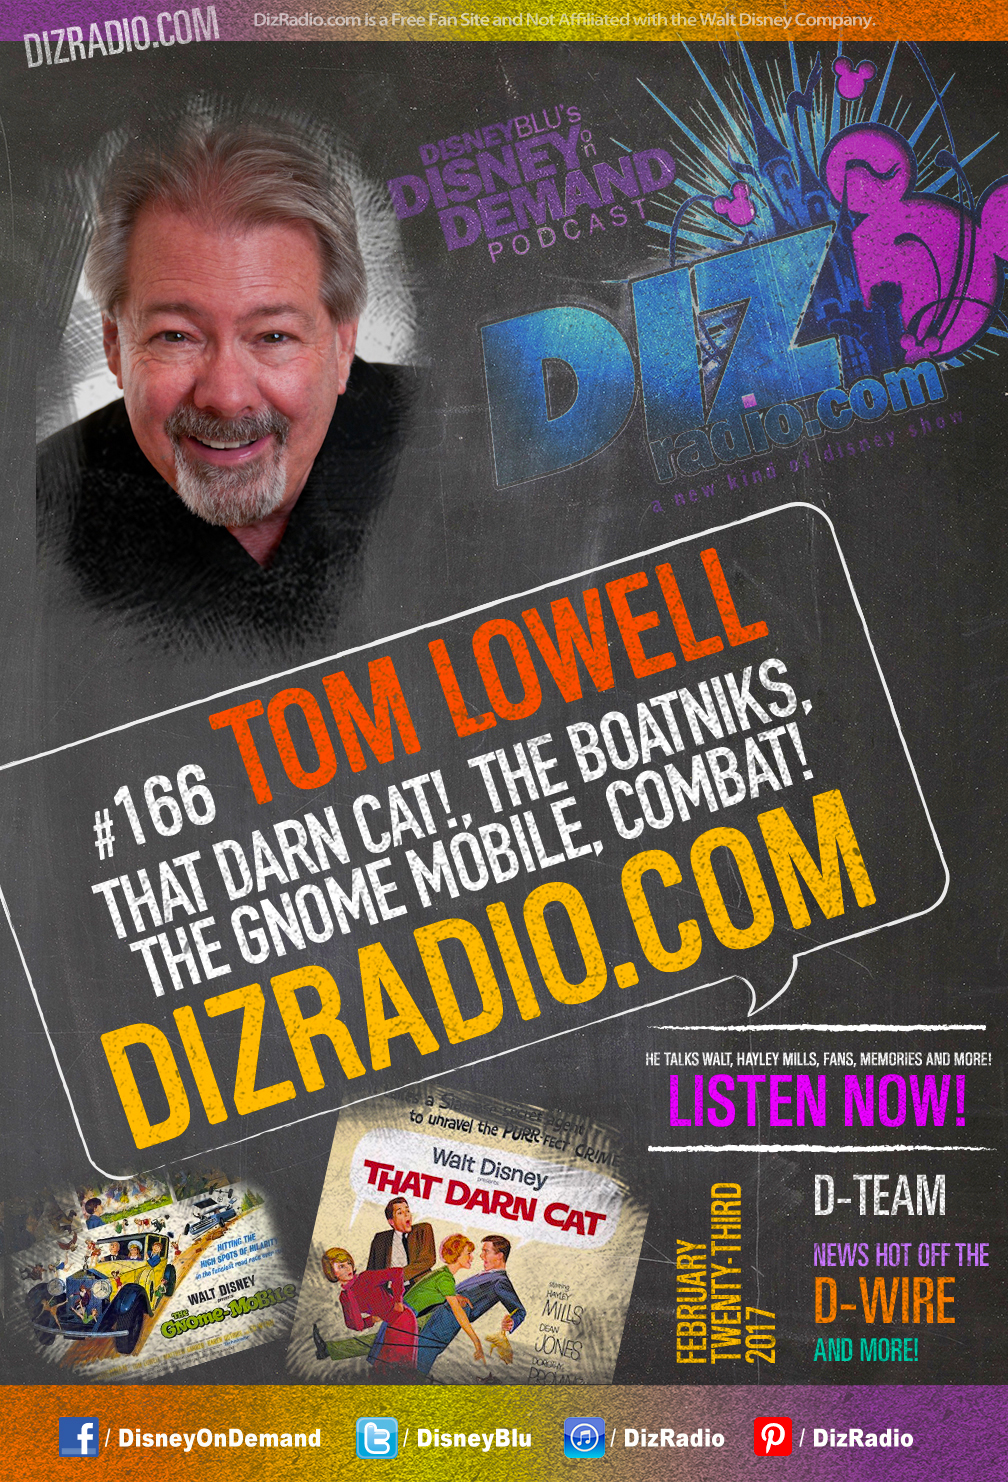 Disneyblu S Disney On Demand Podcast Show 166 W Special Guest Tom Lowell That Darn Cat The Gnome Mobile The Boatniks Combat On Dizradio Com Dizradio Com A Disney Themed Celebrity Guest Podcast